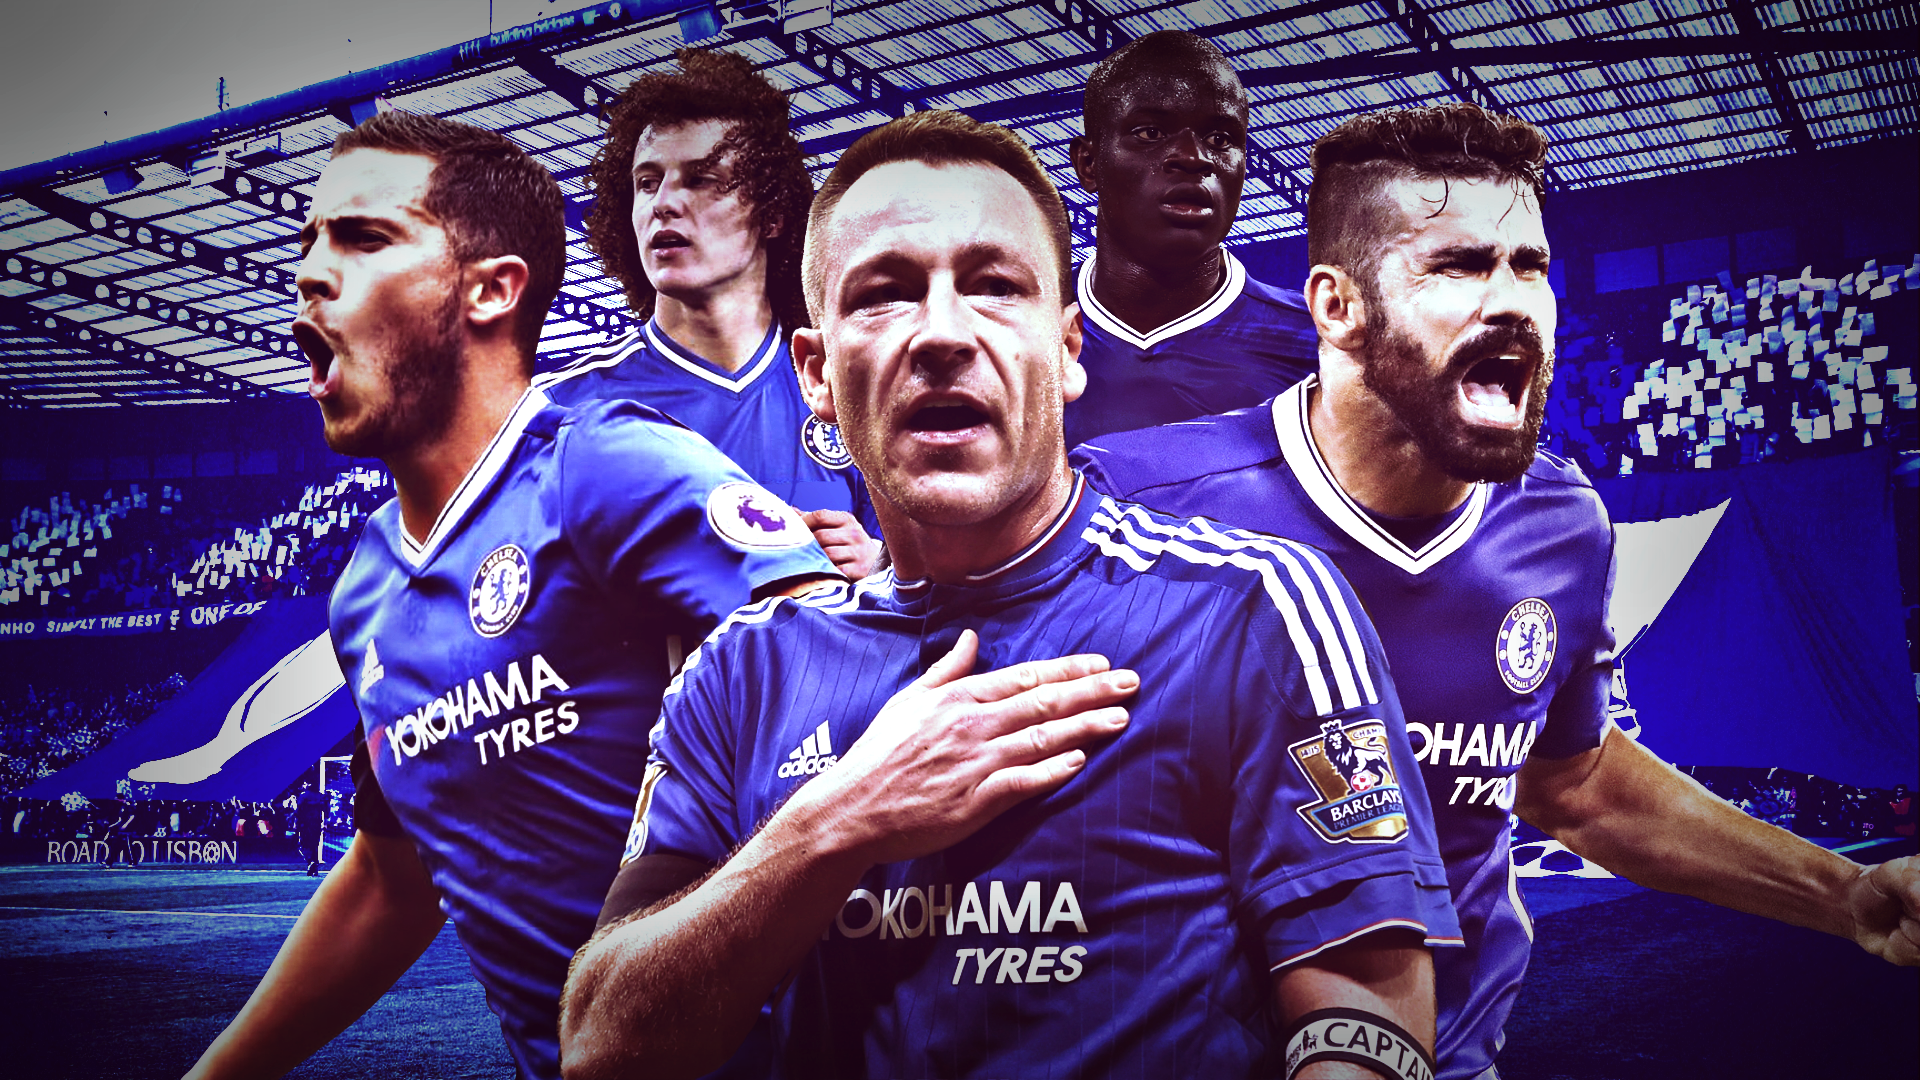 TDECFC 1 0 Chelsea Wallpaper By